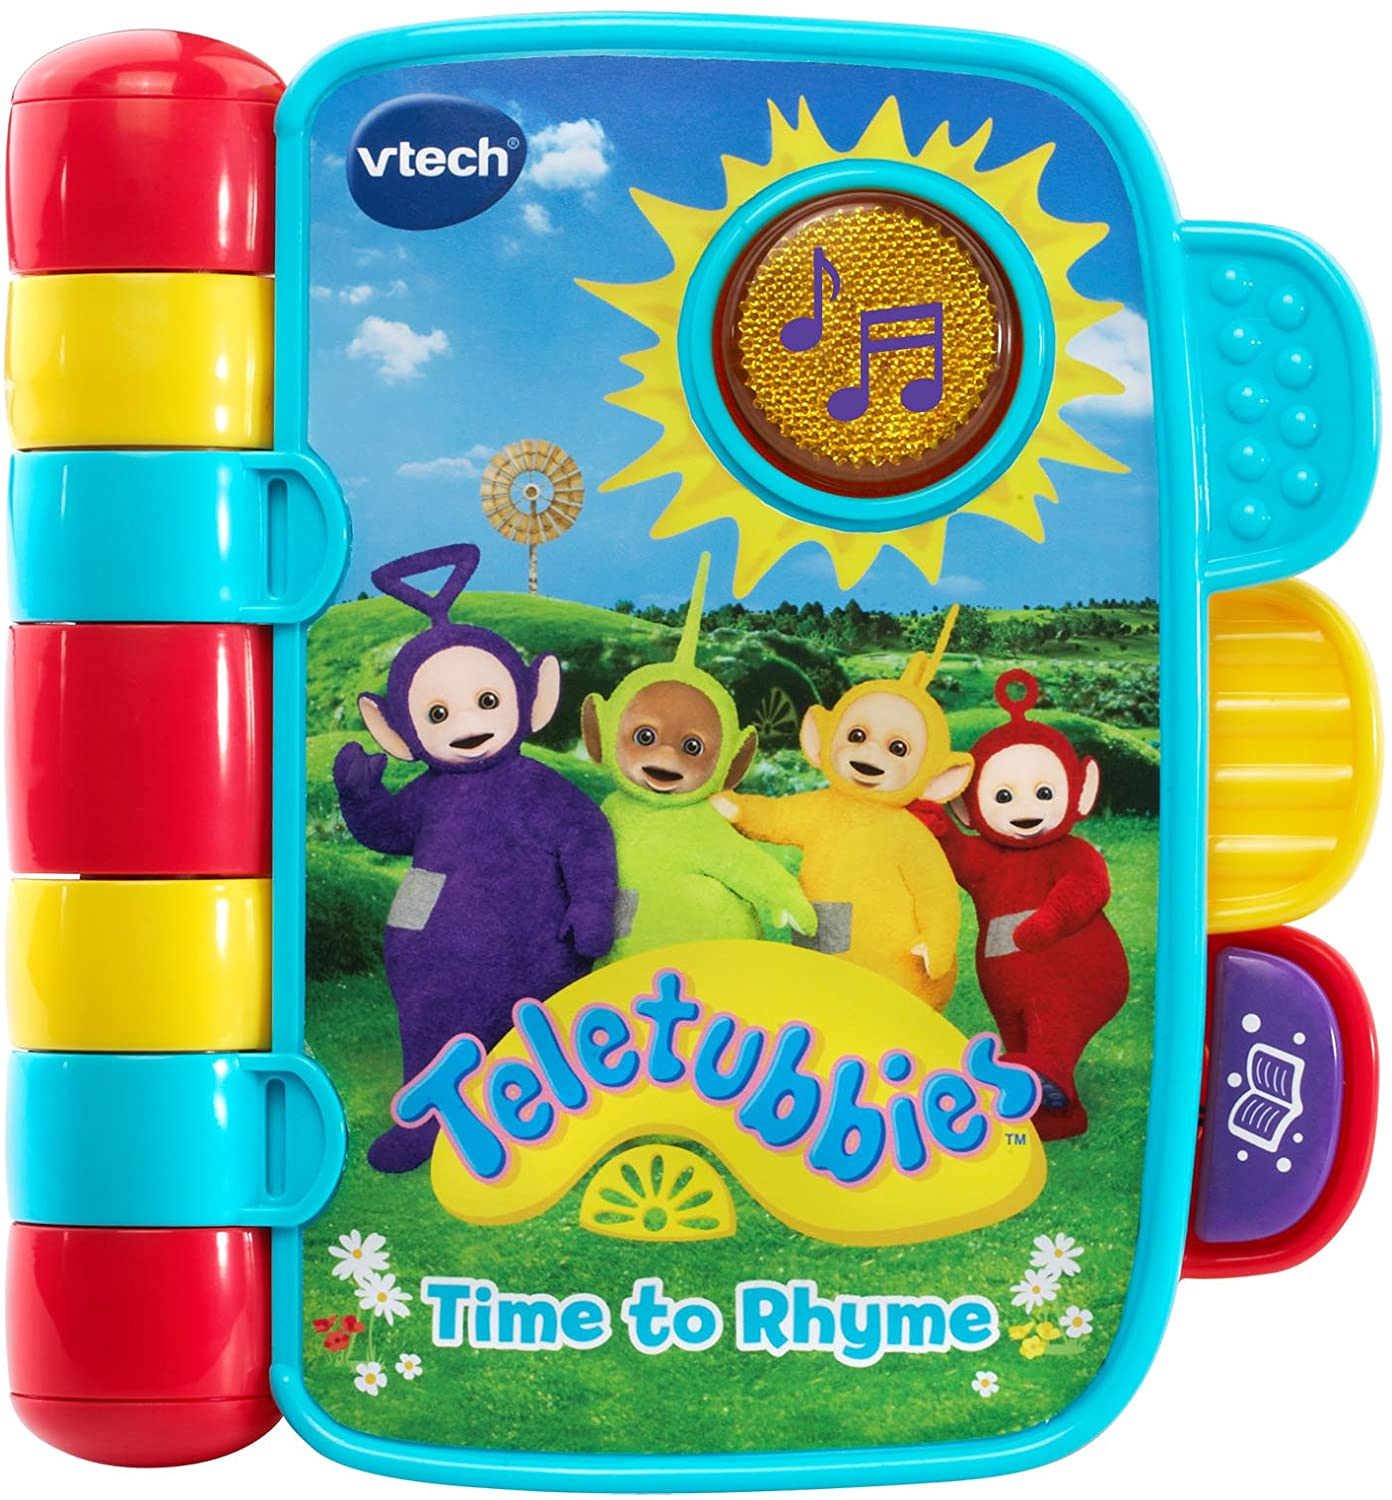 Vtech 193203 Teletubbies Time to Rhyme Learning and Activity Toys - Multicolour